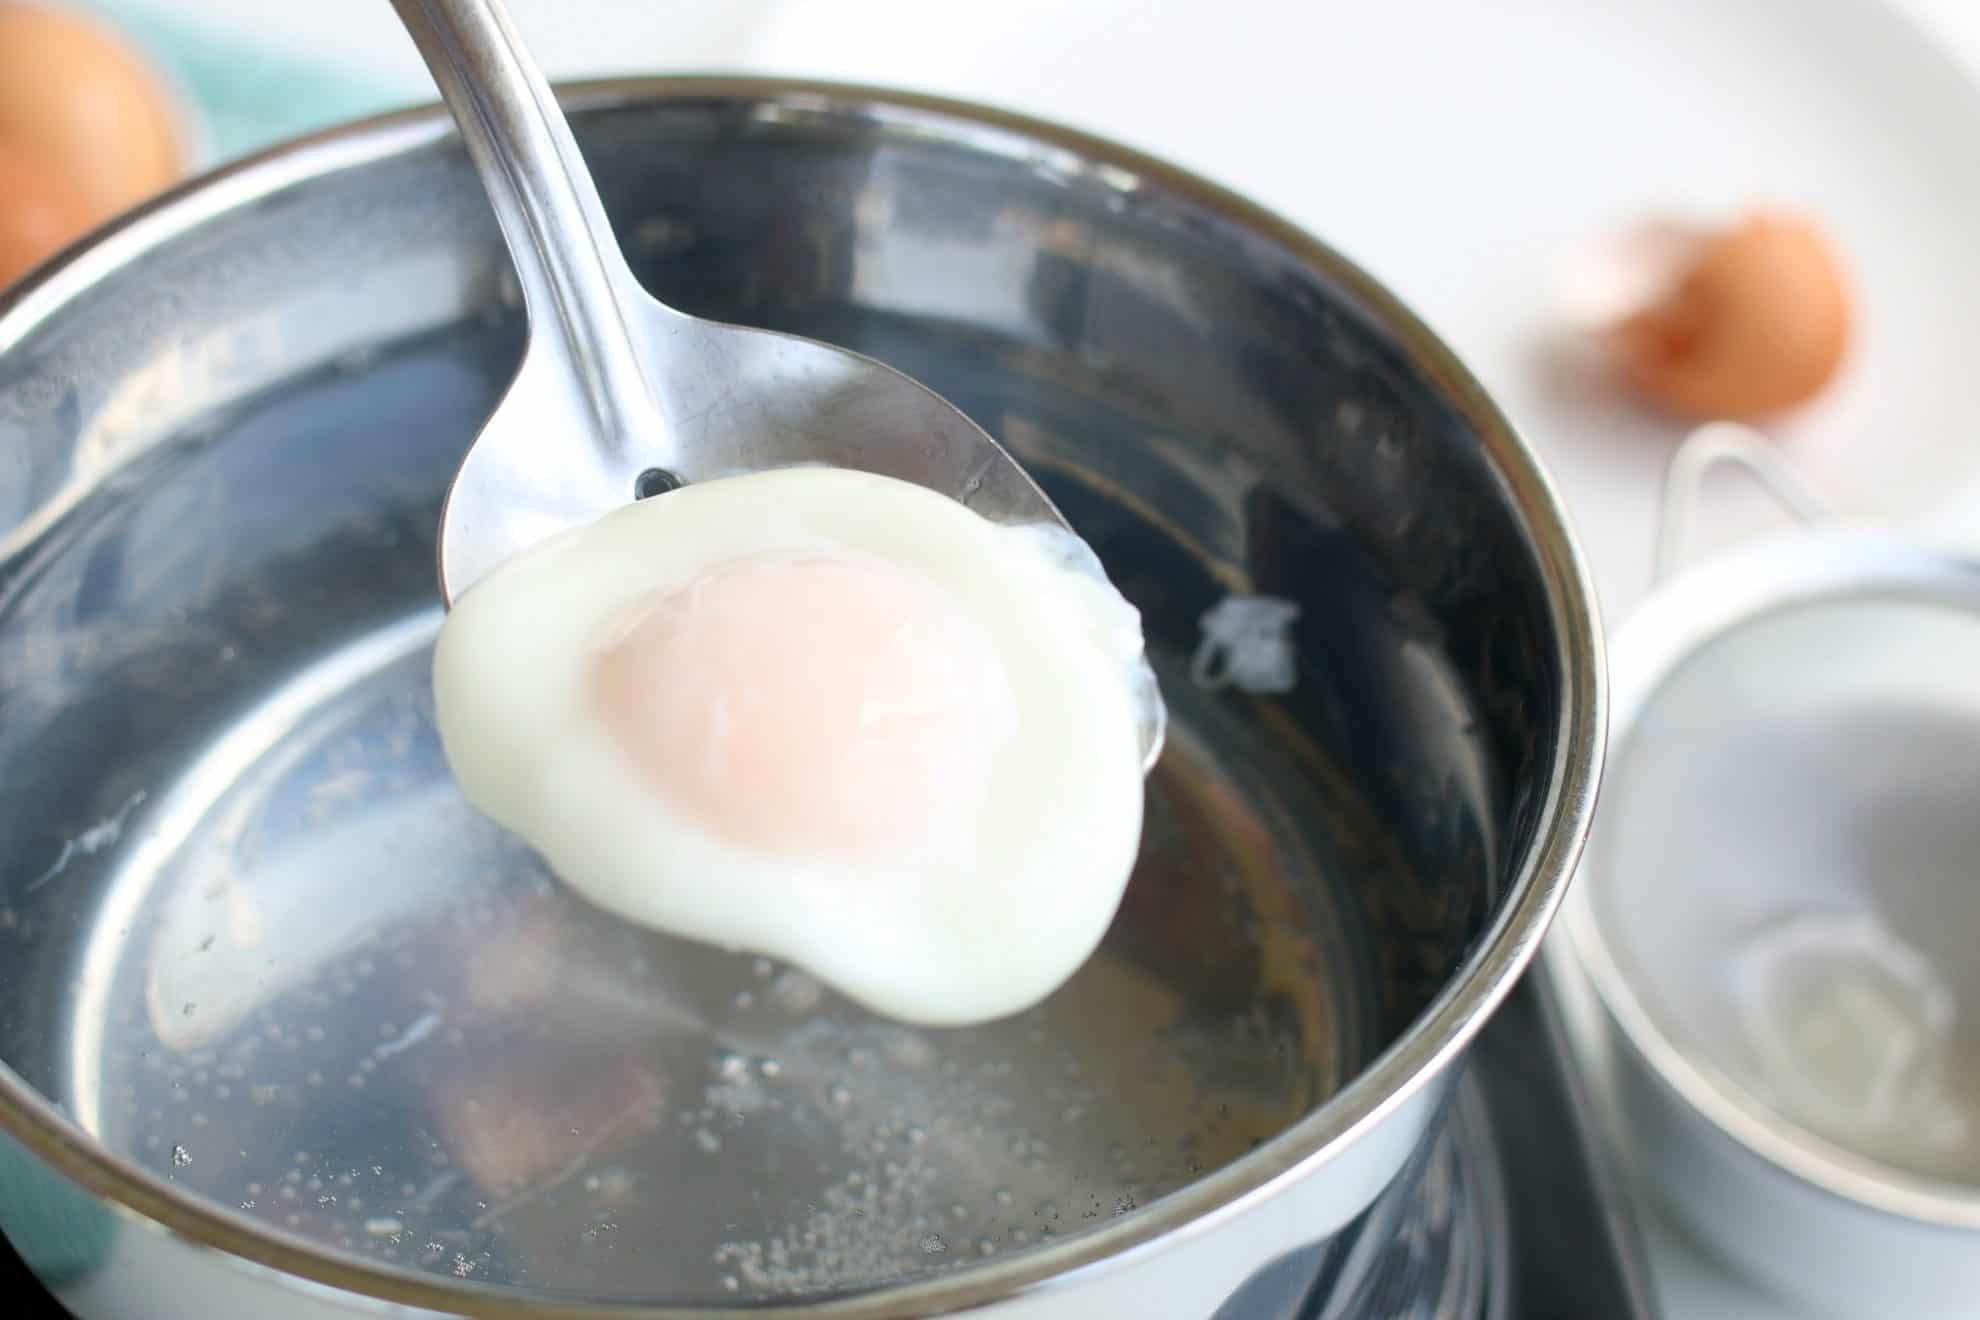 A poached egg after it is cooked